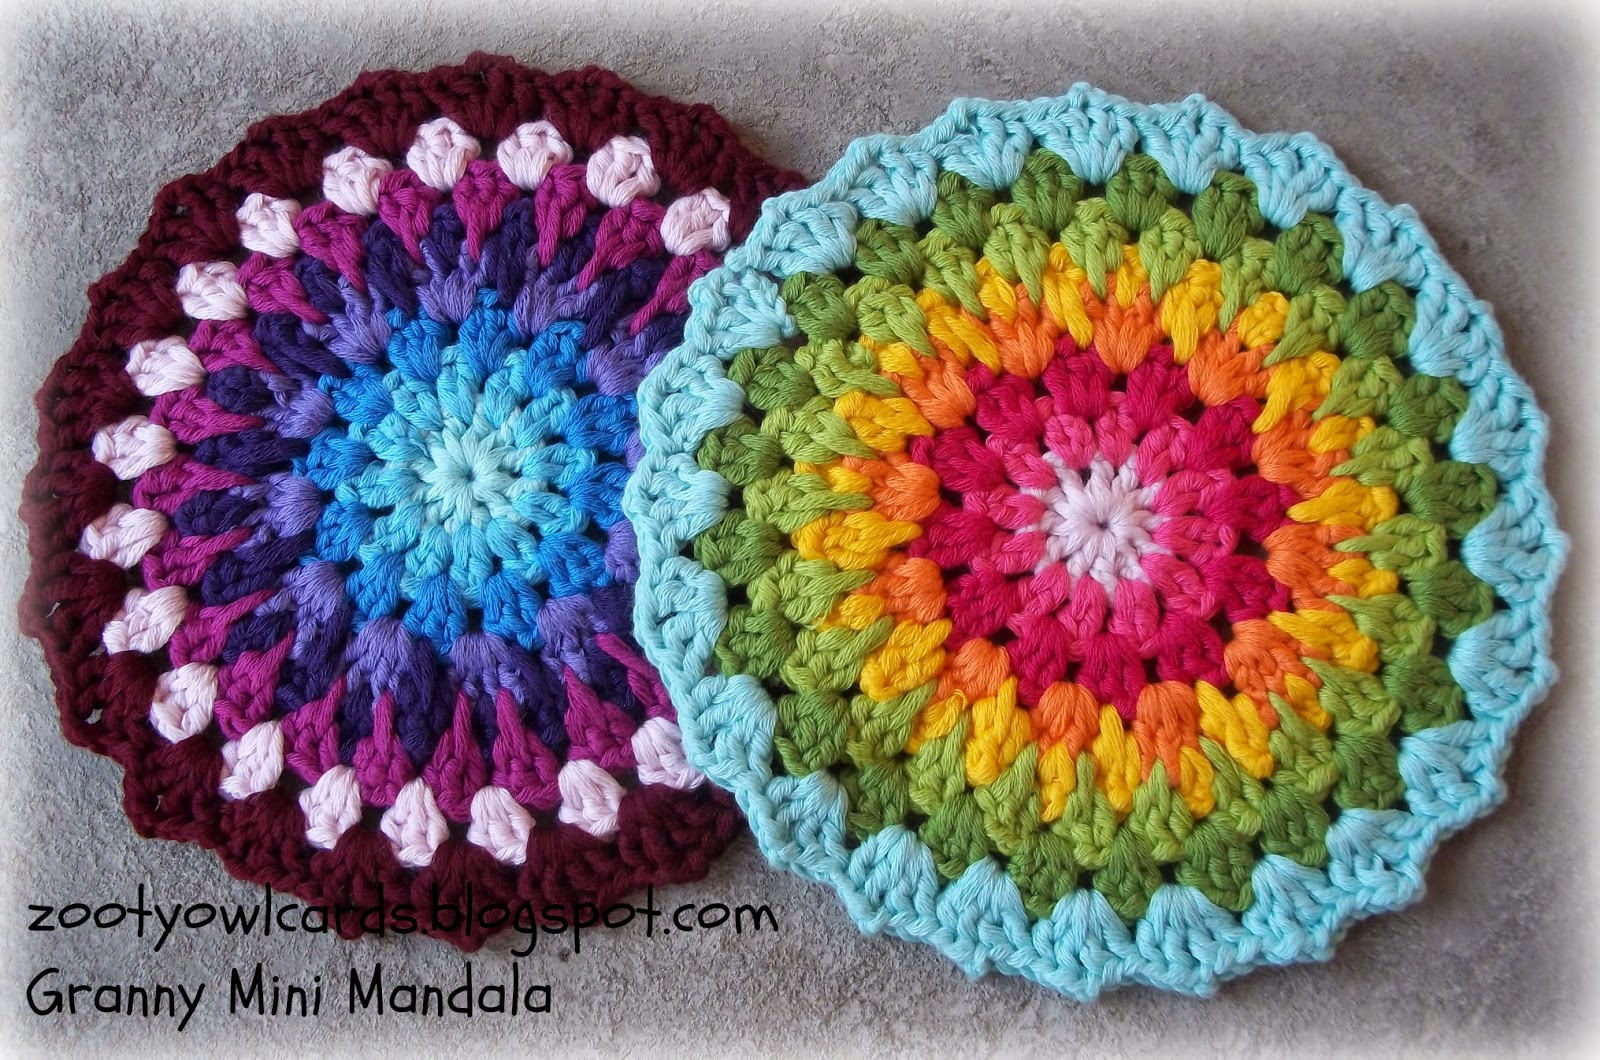 Crochet Free Pattern Mandala : Zooty Owls Crafty Blog: Granny Mini Mandala